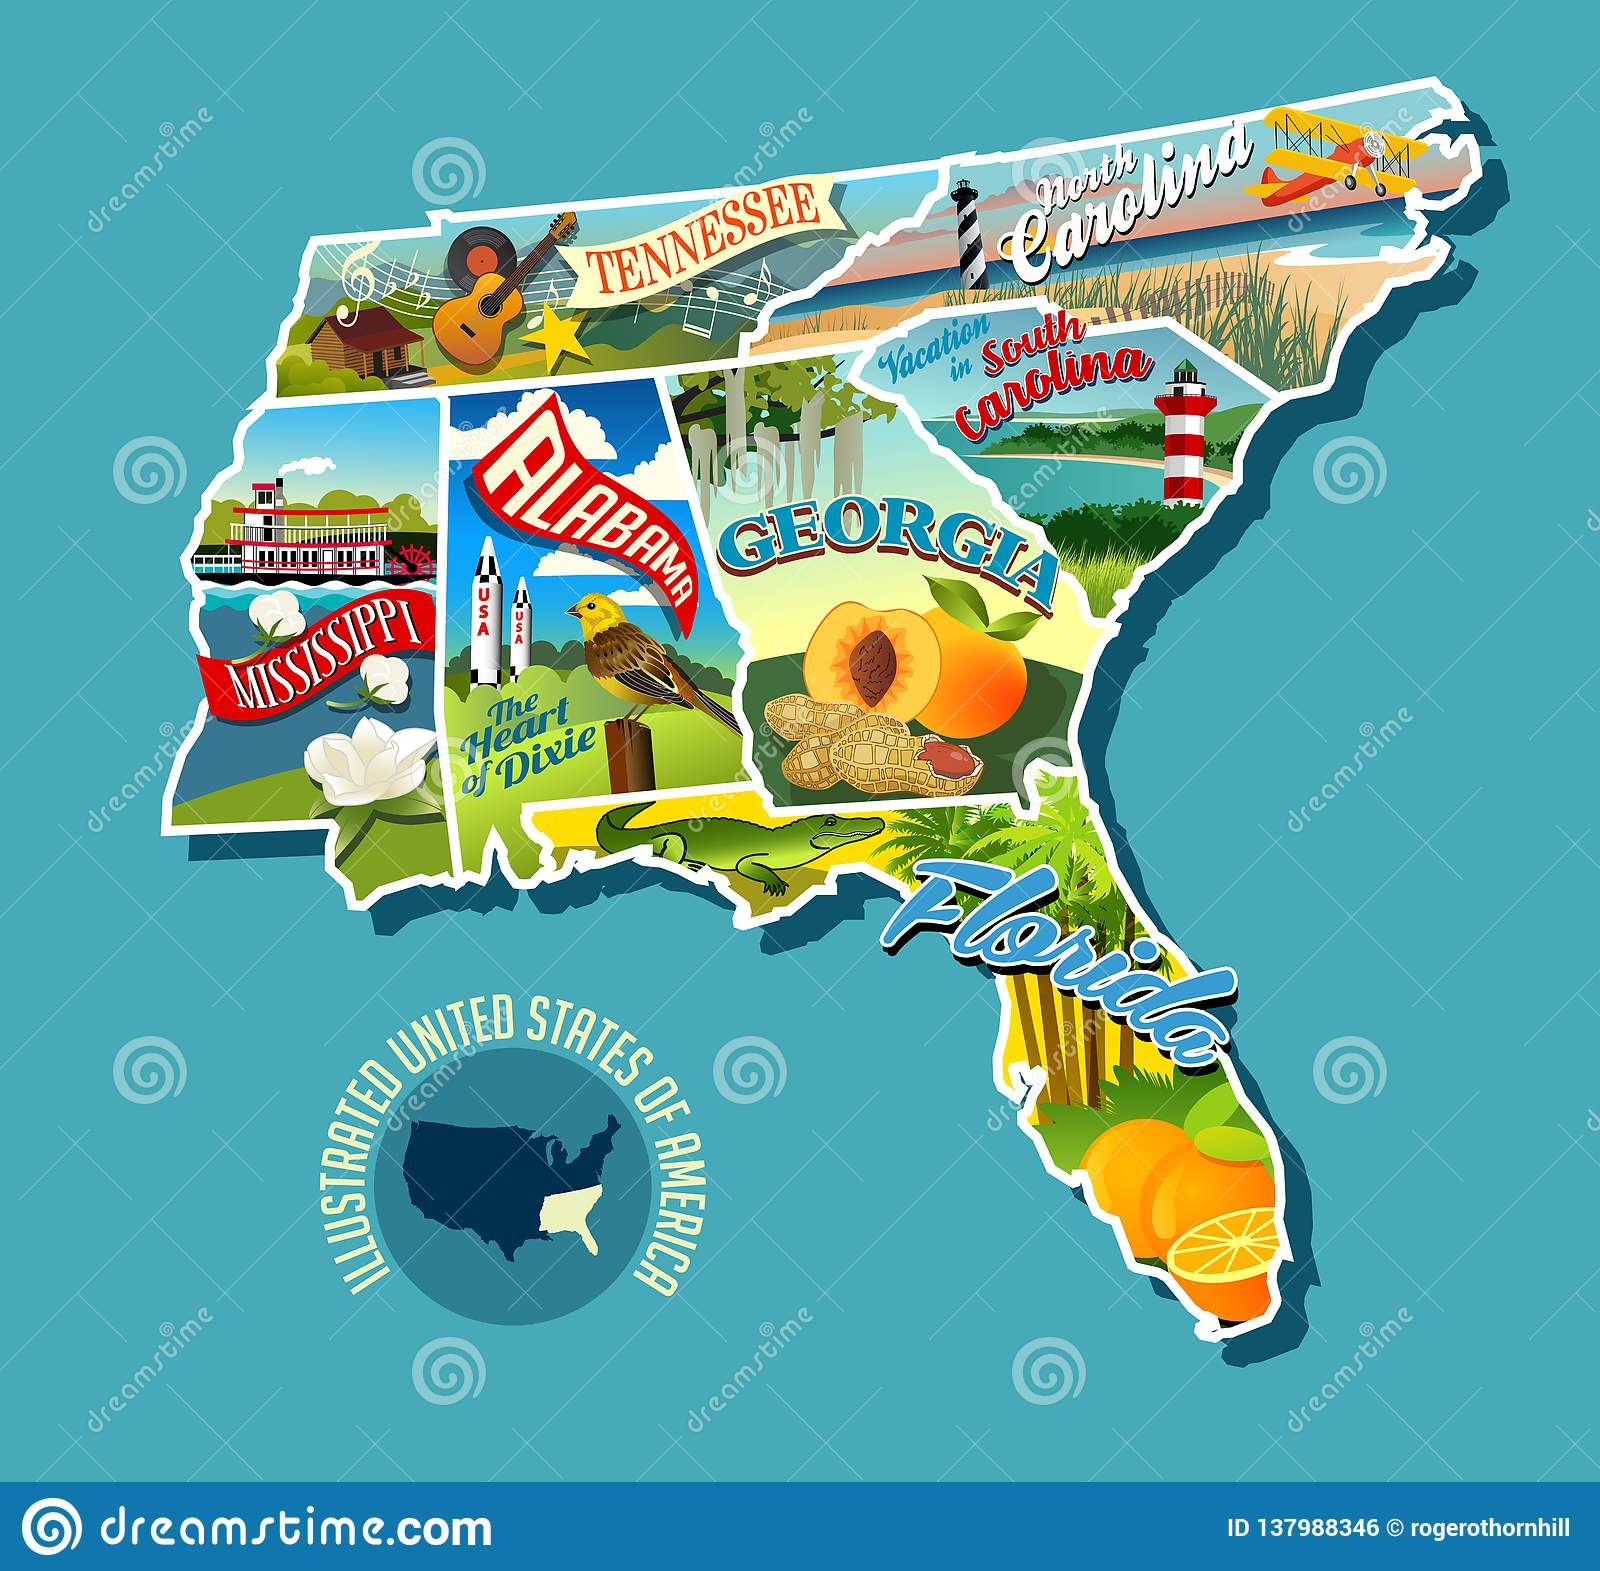 Image of: Southern States Map Stock Illustrations 480 Southern States Map Stock Illustrations Vectors Clipart Dreamstime